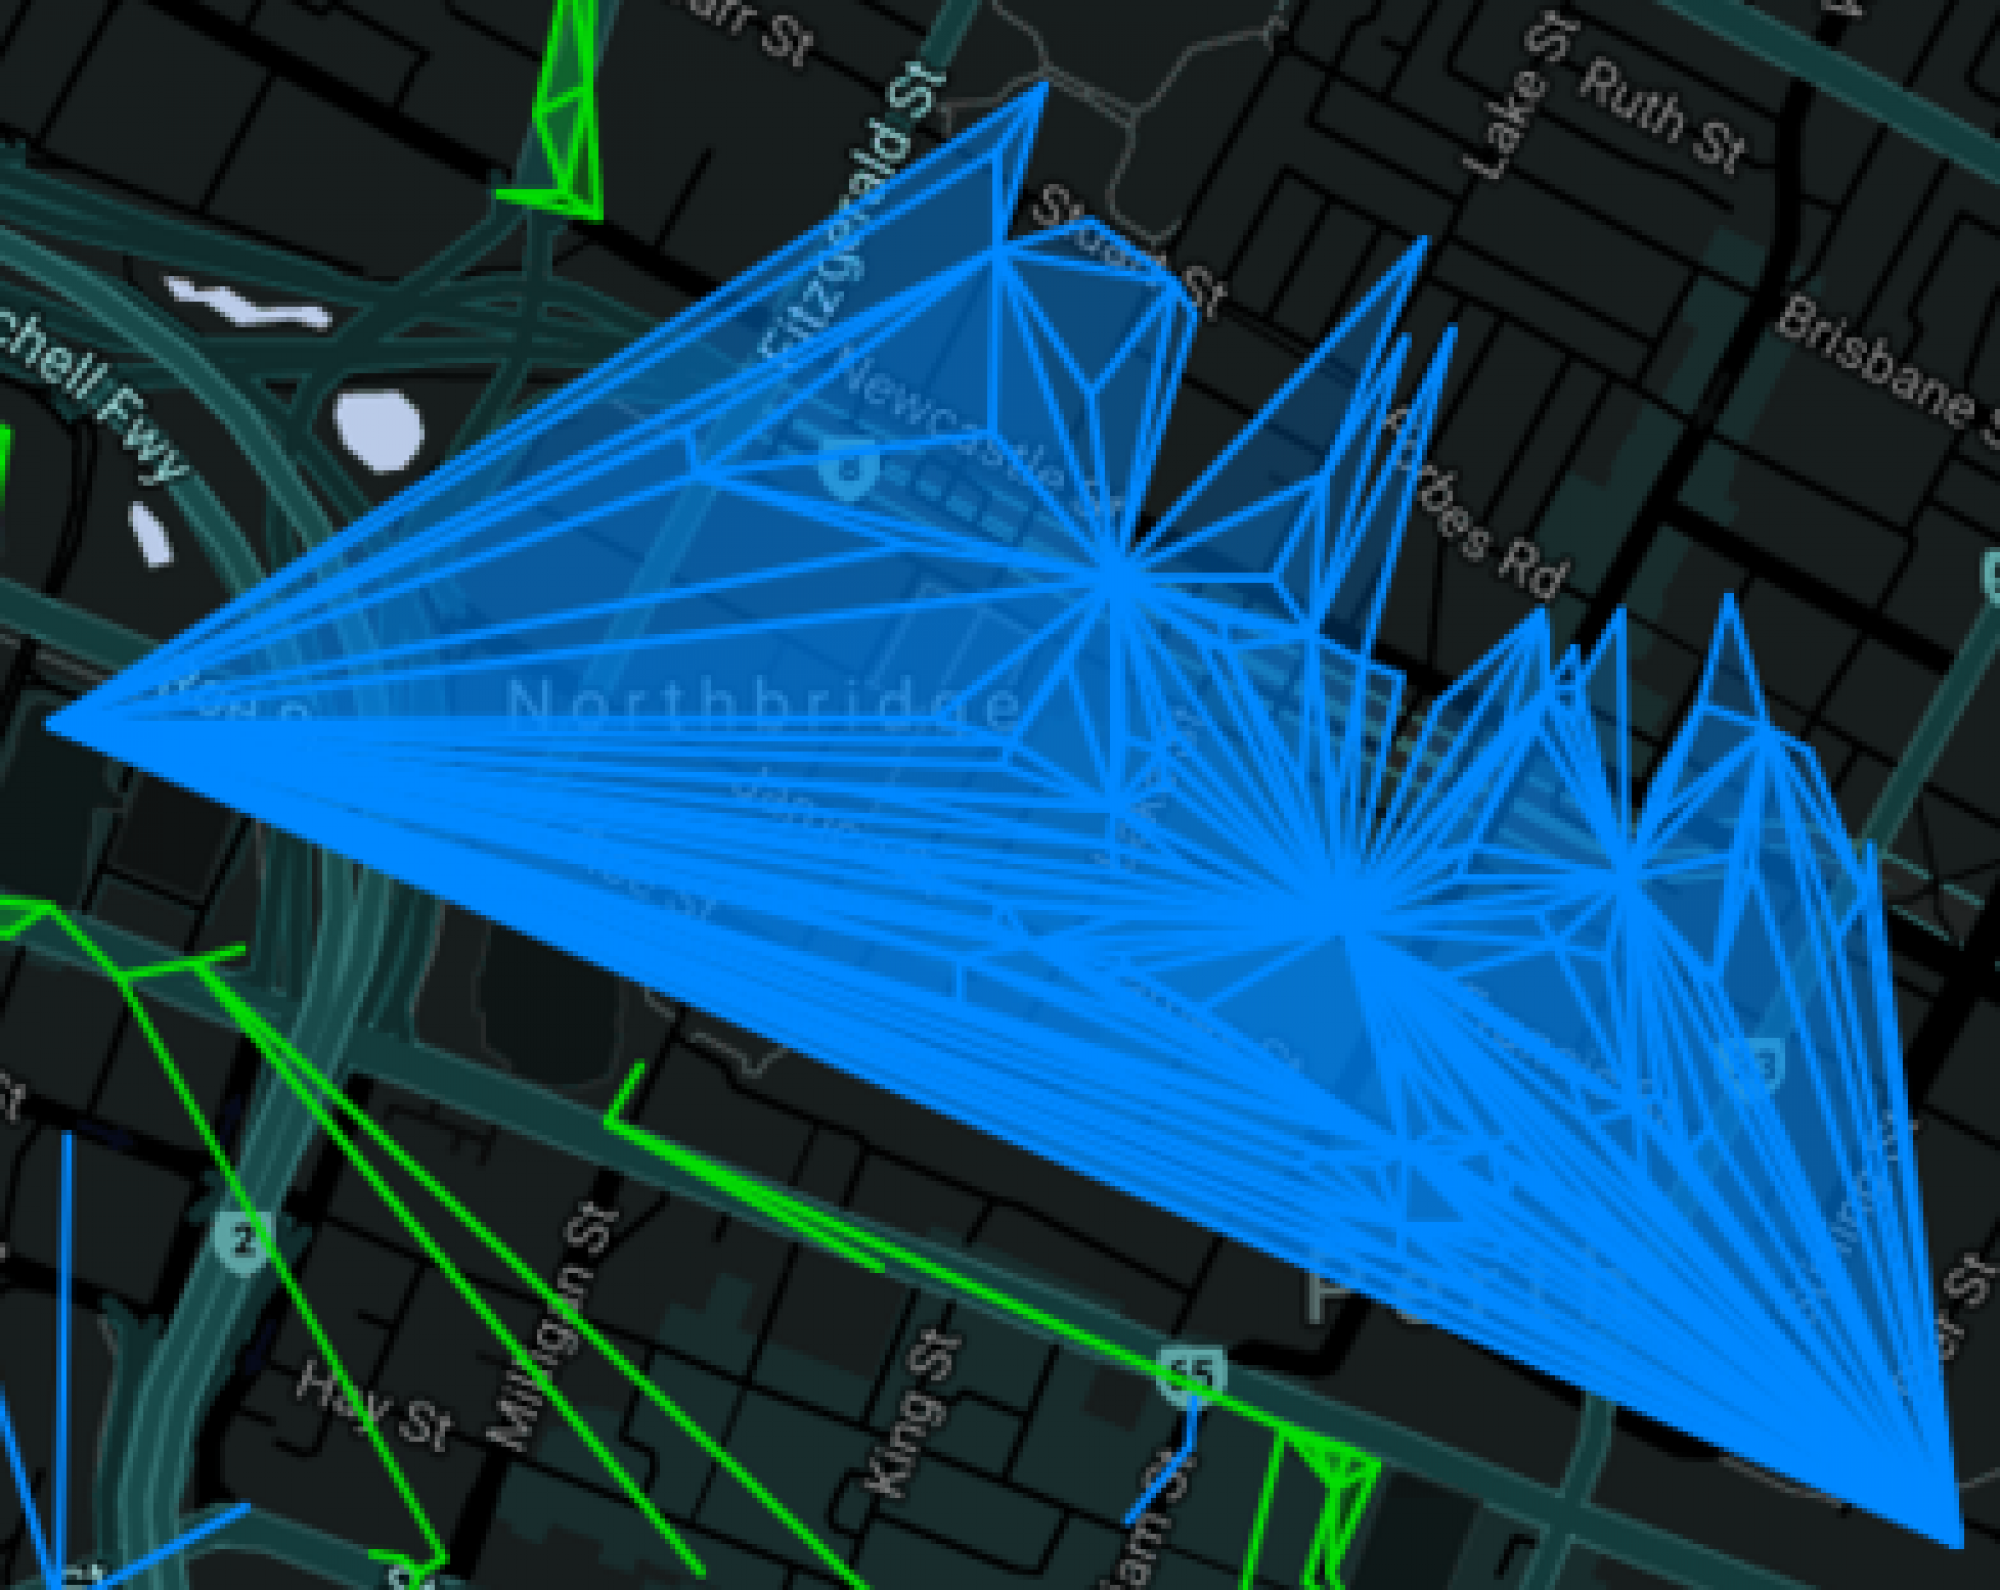 Ingress Sitreps